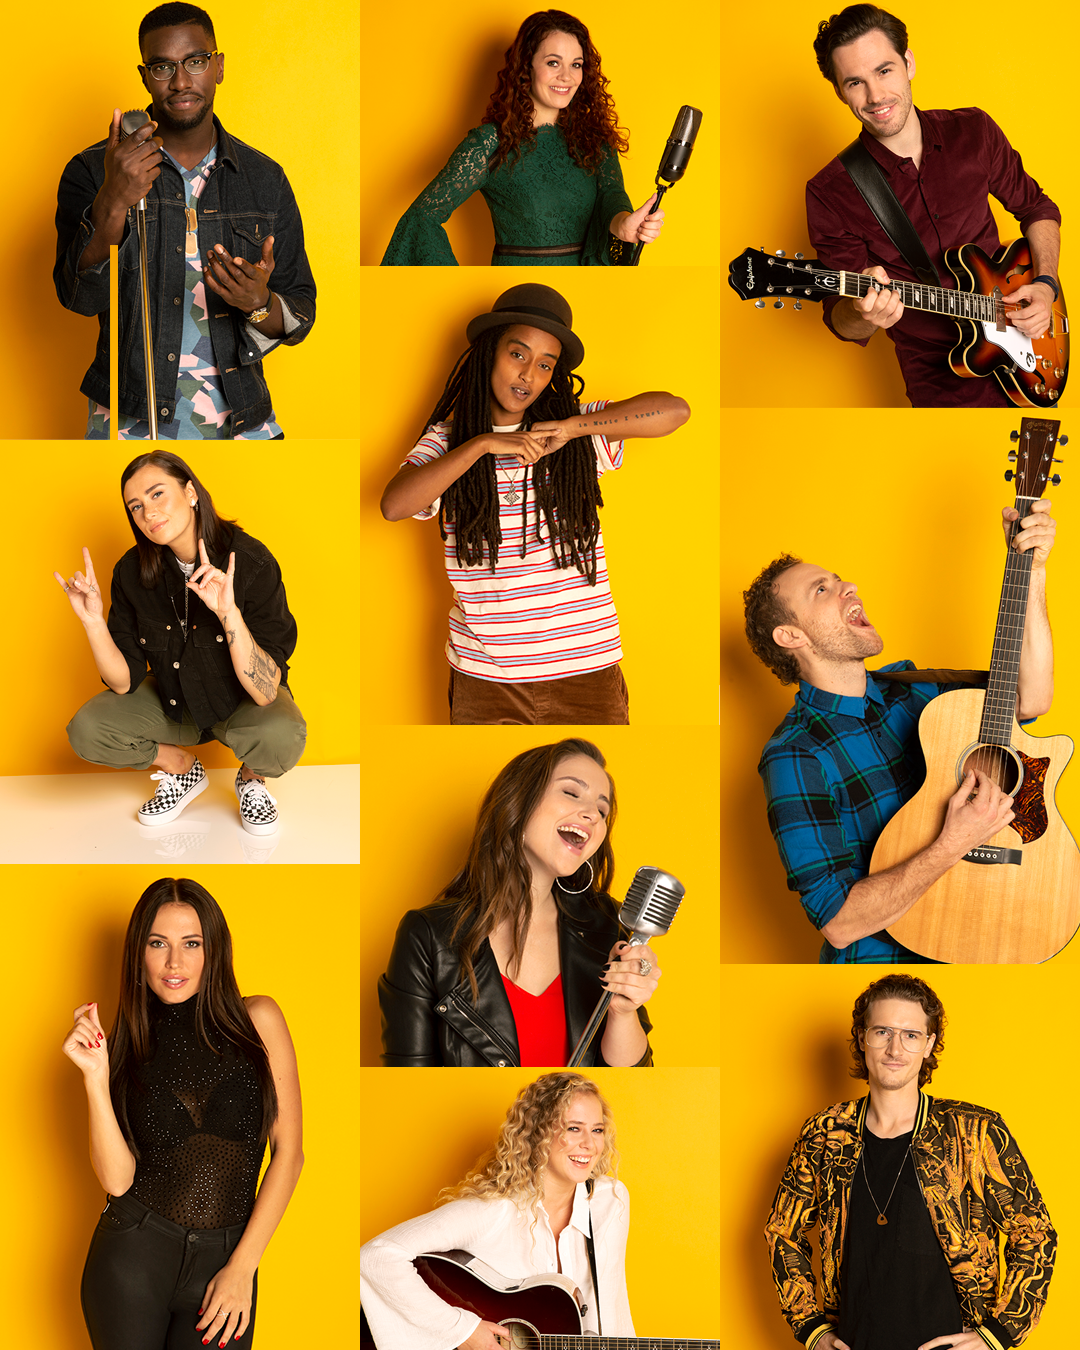 Ctv Reveals The 30 Aspiring Artists Featured On Season 2 Of Hit